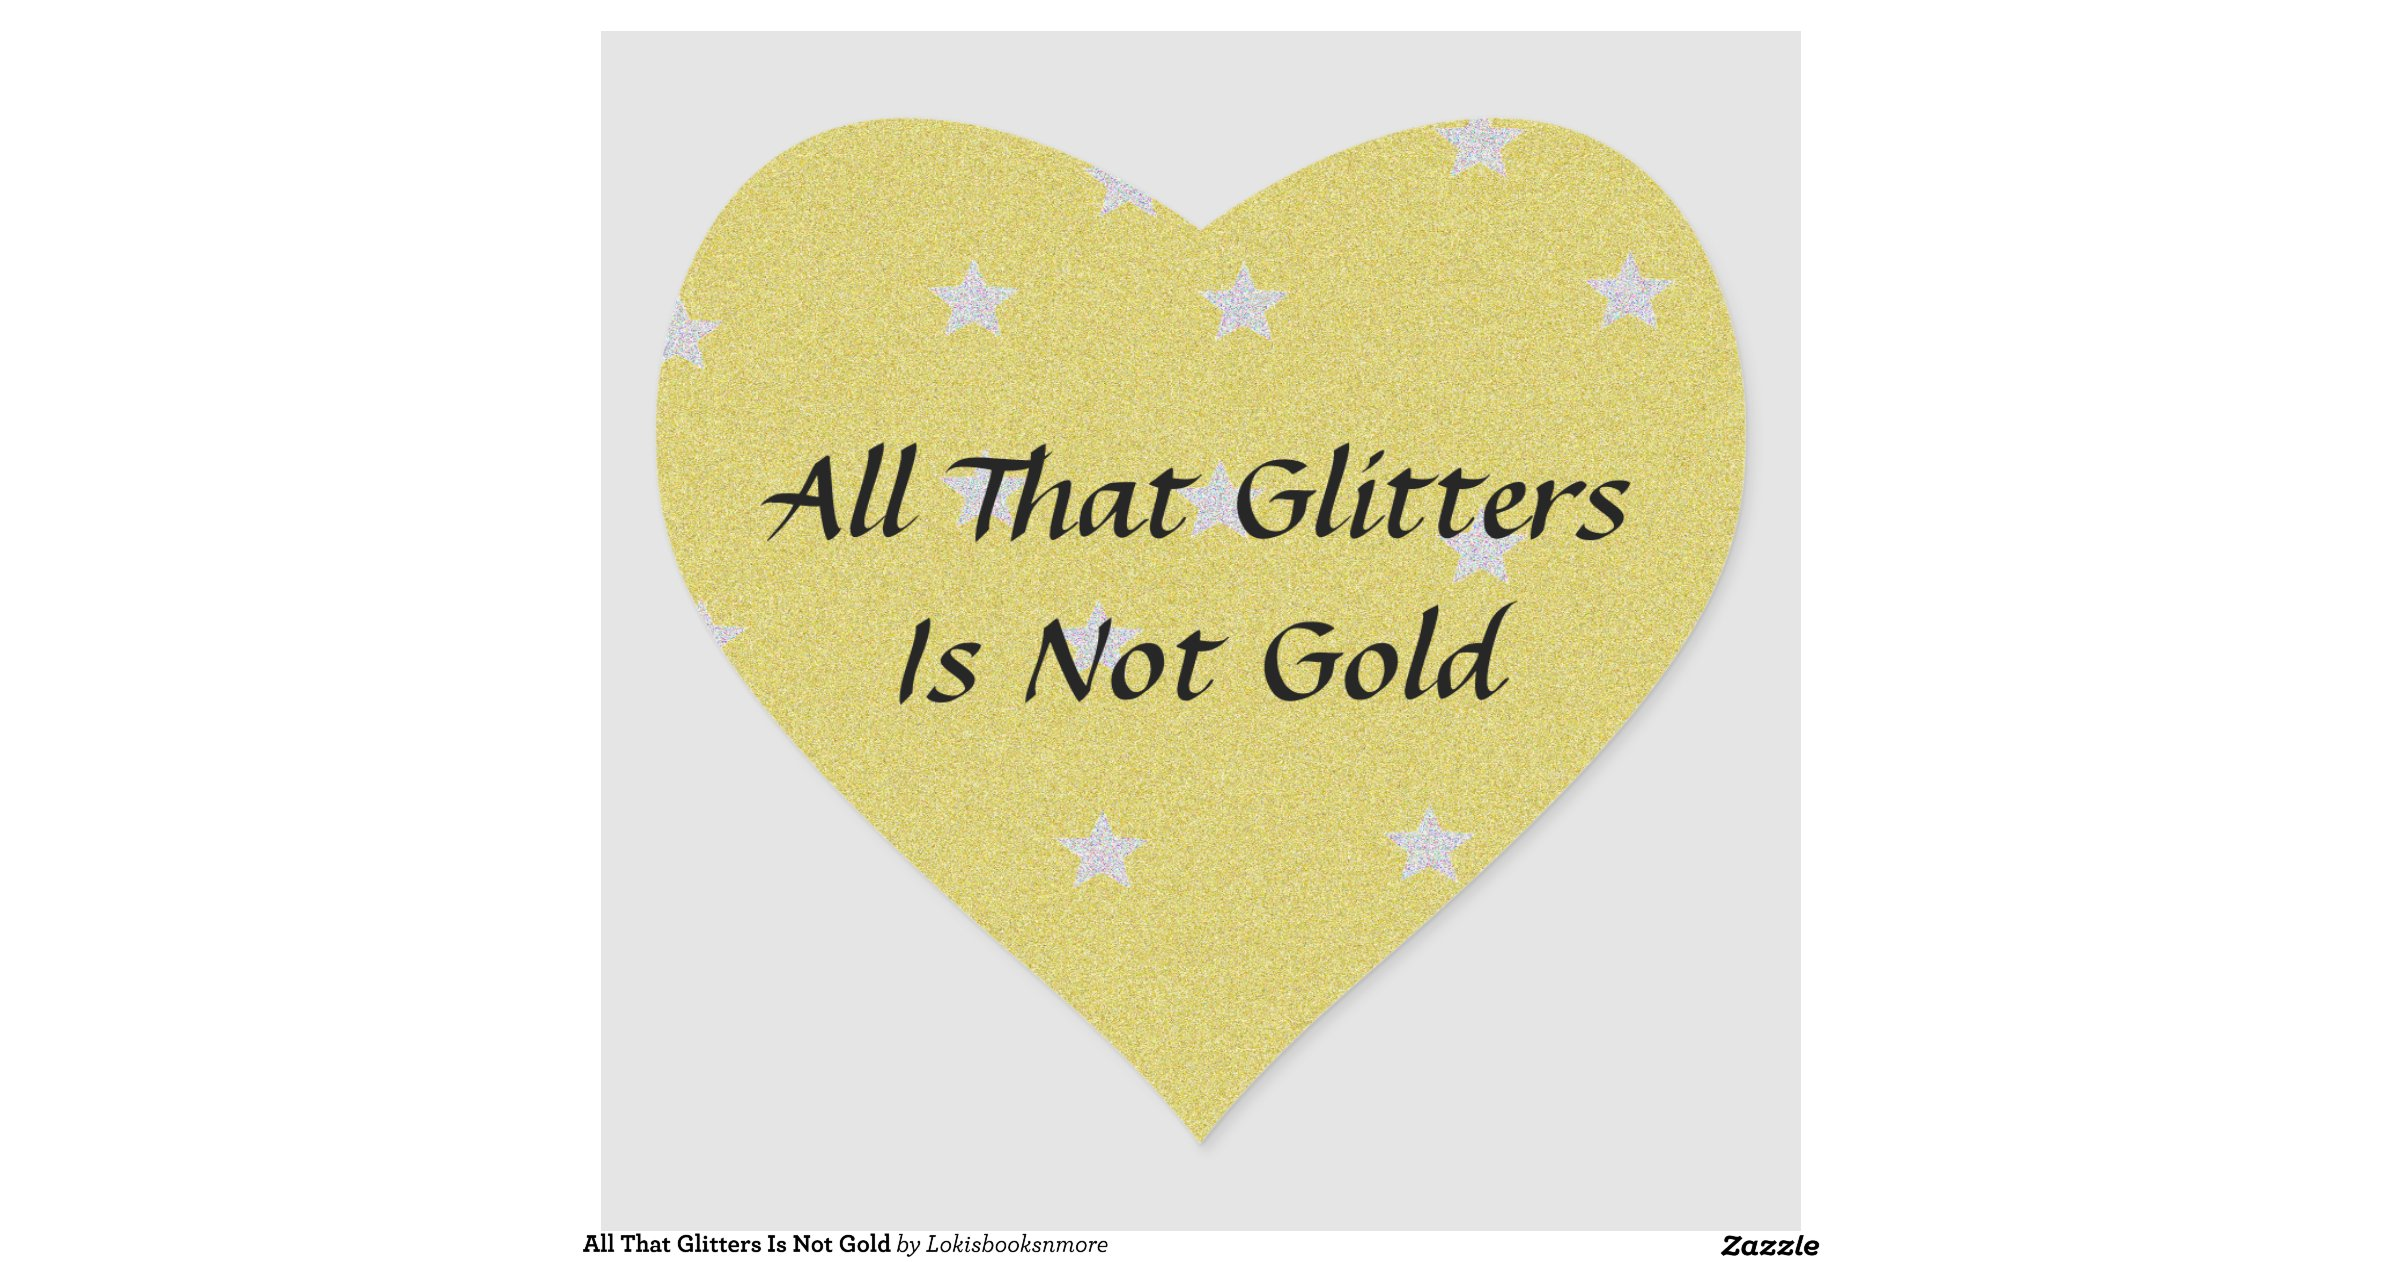 all that glitters is not gold essay and all that glitters is not gold essay composition argument essay